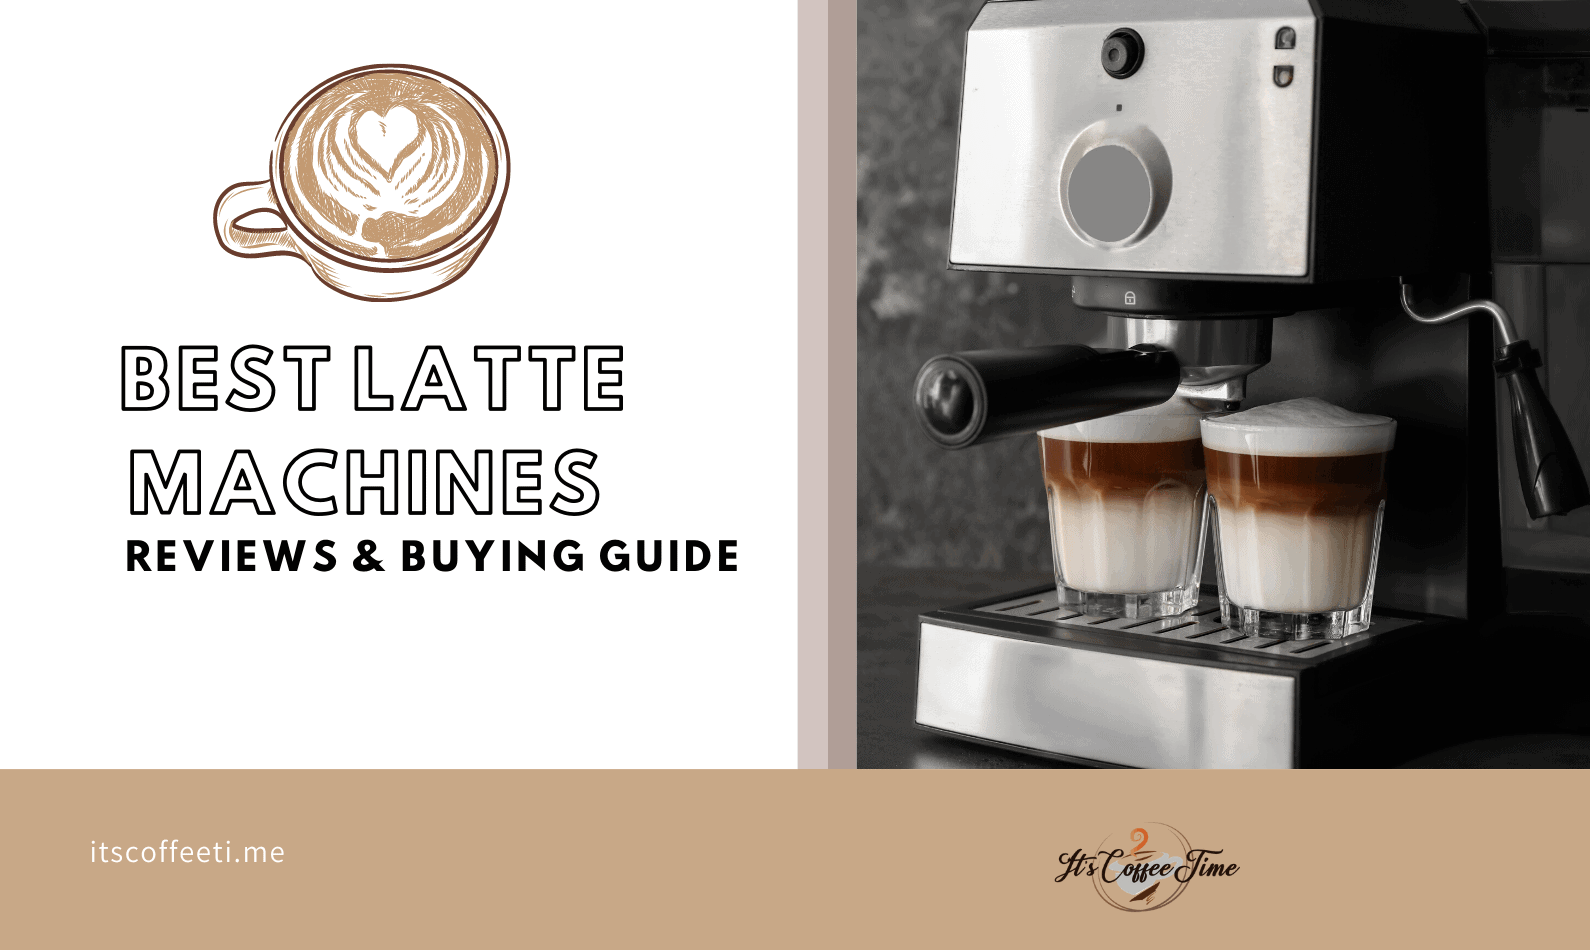 Best Latte Machines